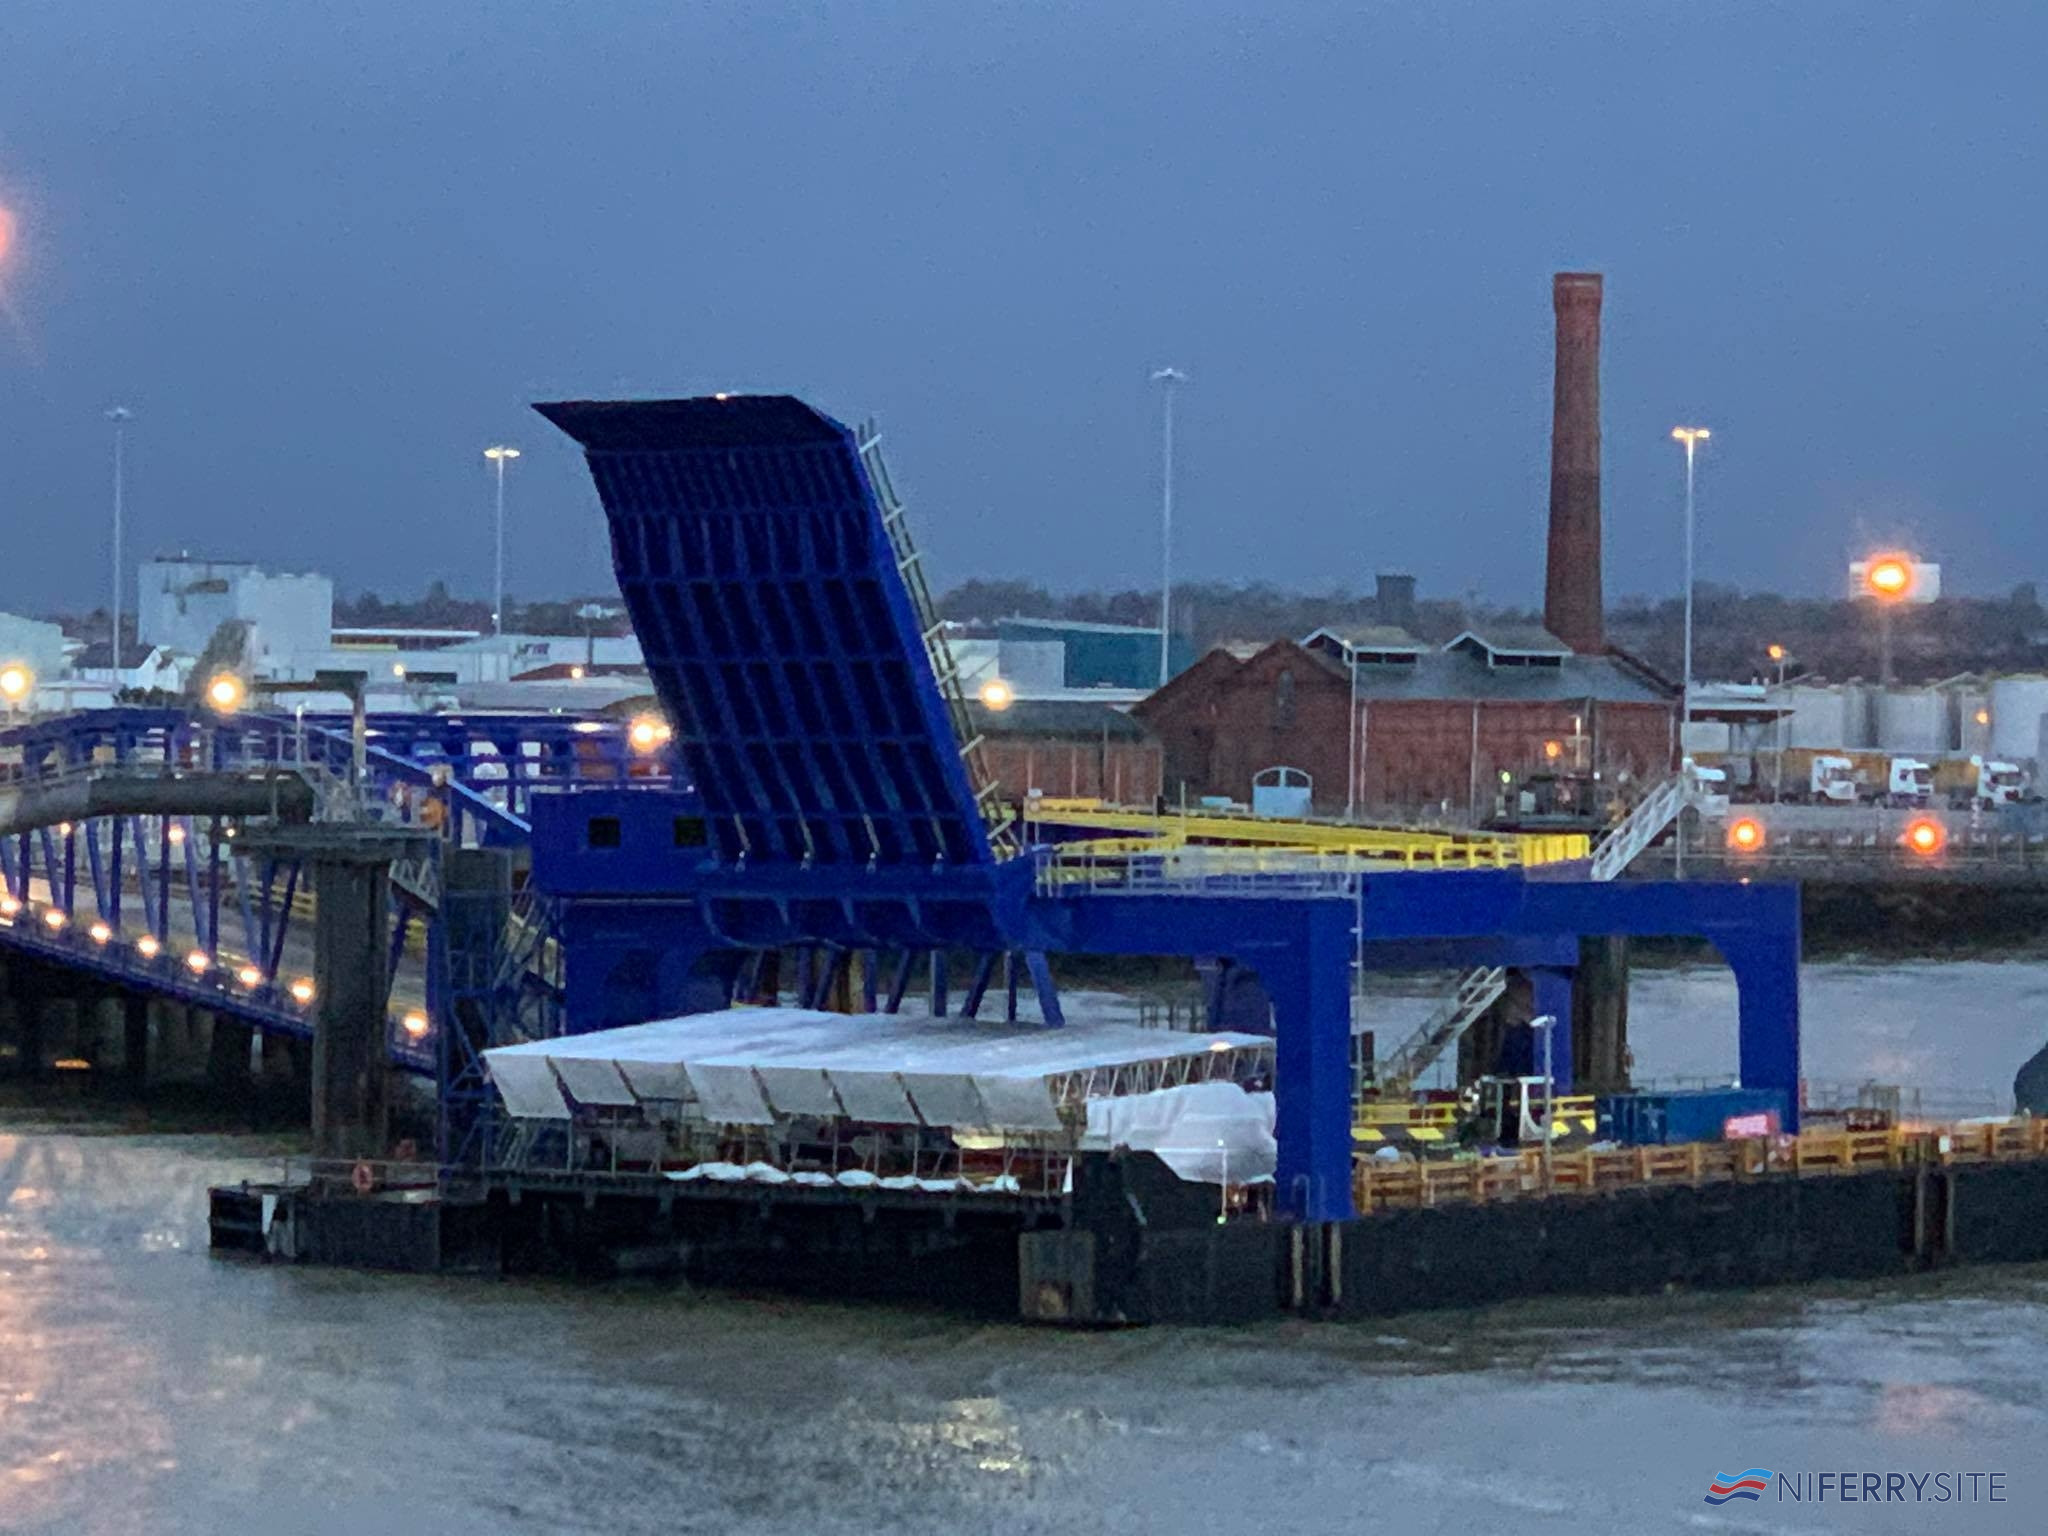 Work continues on upgrading the linkspan and berth at Birkenhead's 12 Quays South. Copyright © David Faerder.